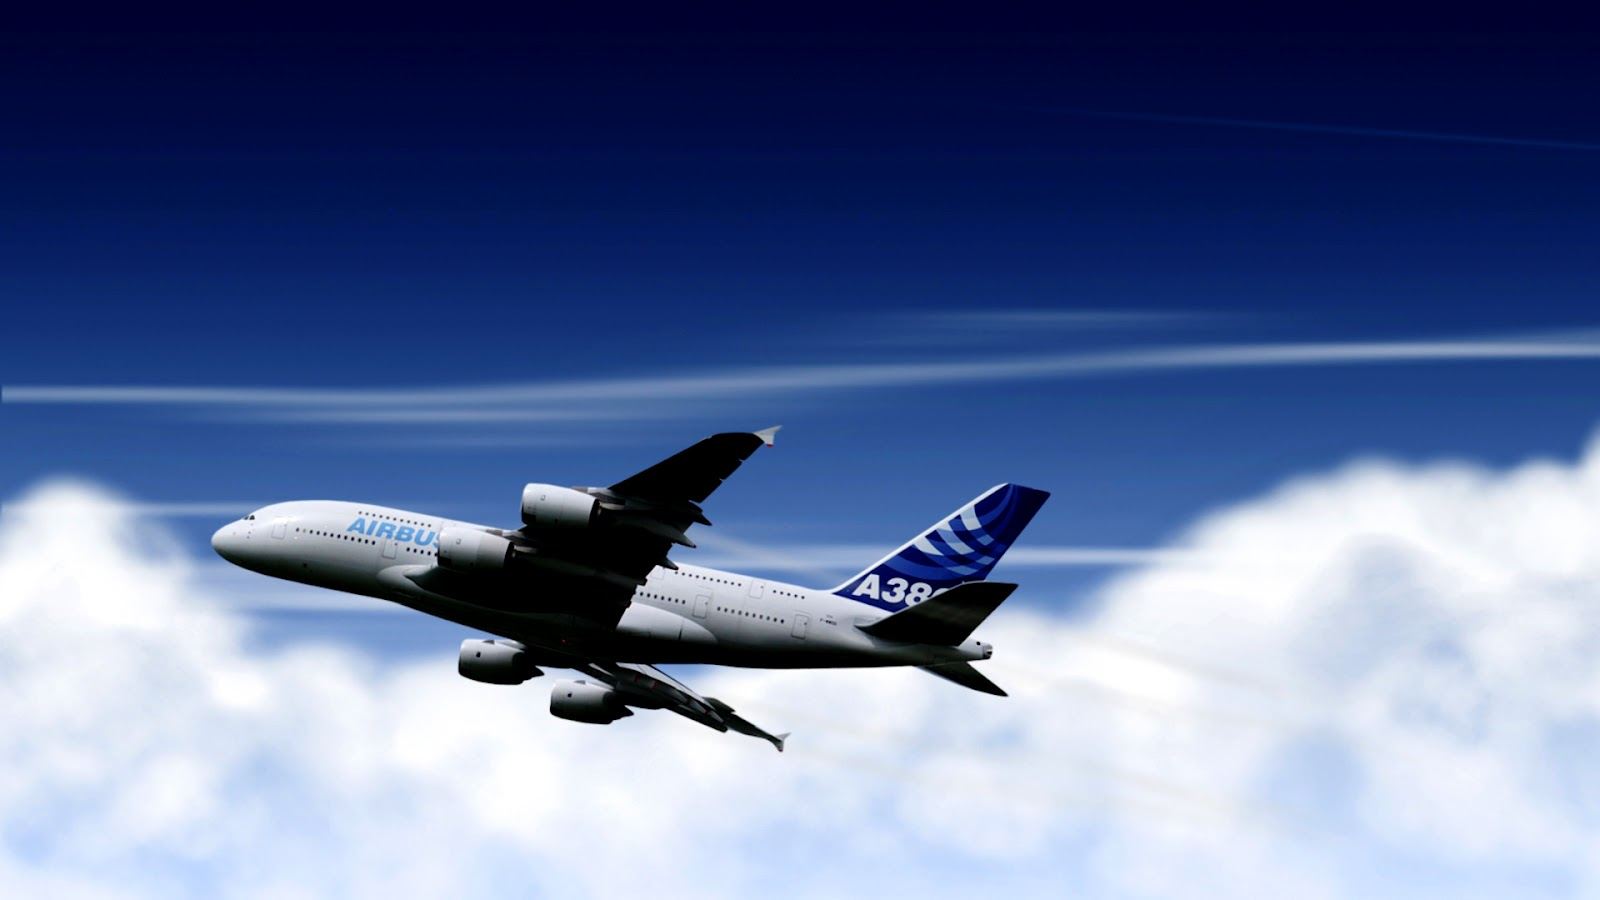 Airbus A380 Planes Hd Wallpapers  Desktop Wallpapers